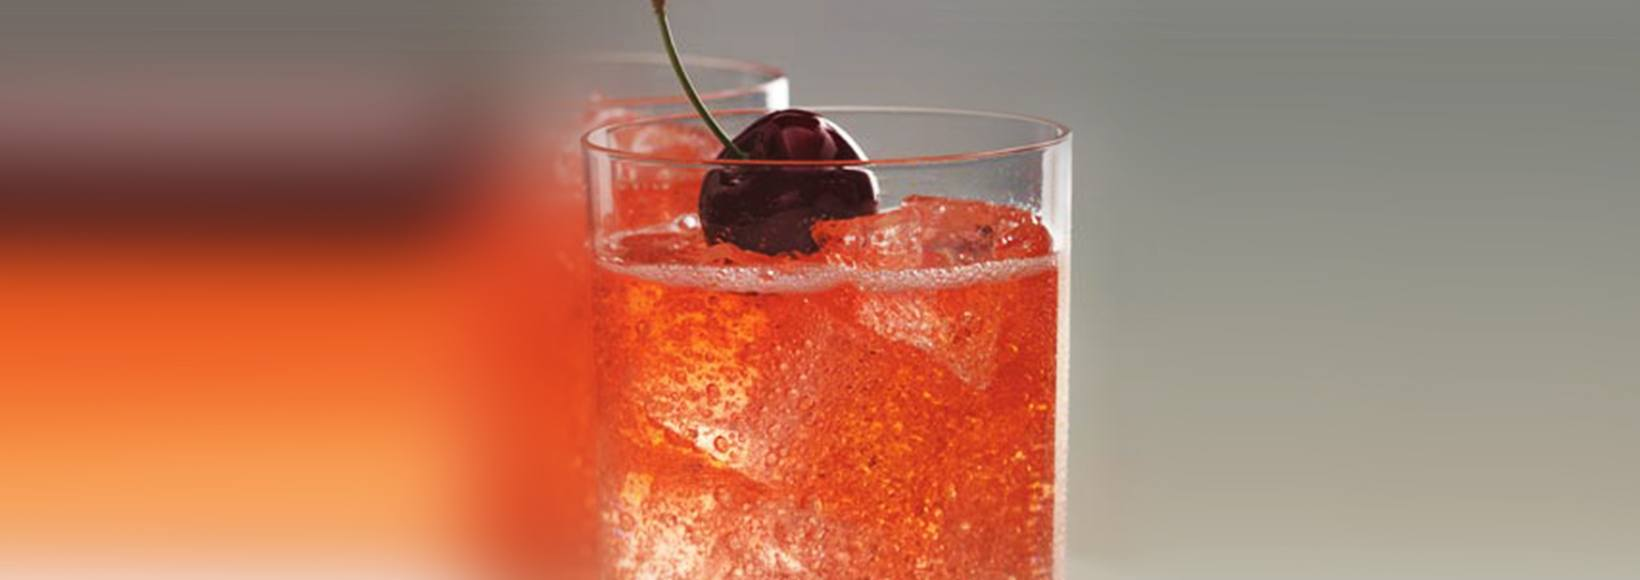 Cocktail cherry: description, application and methods of preparation 90